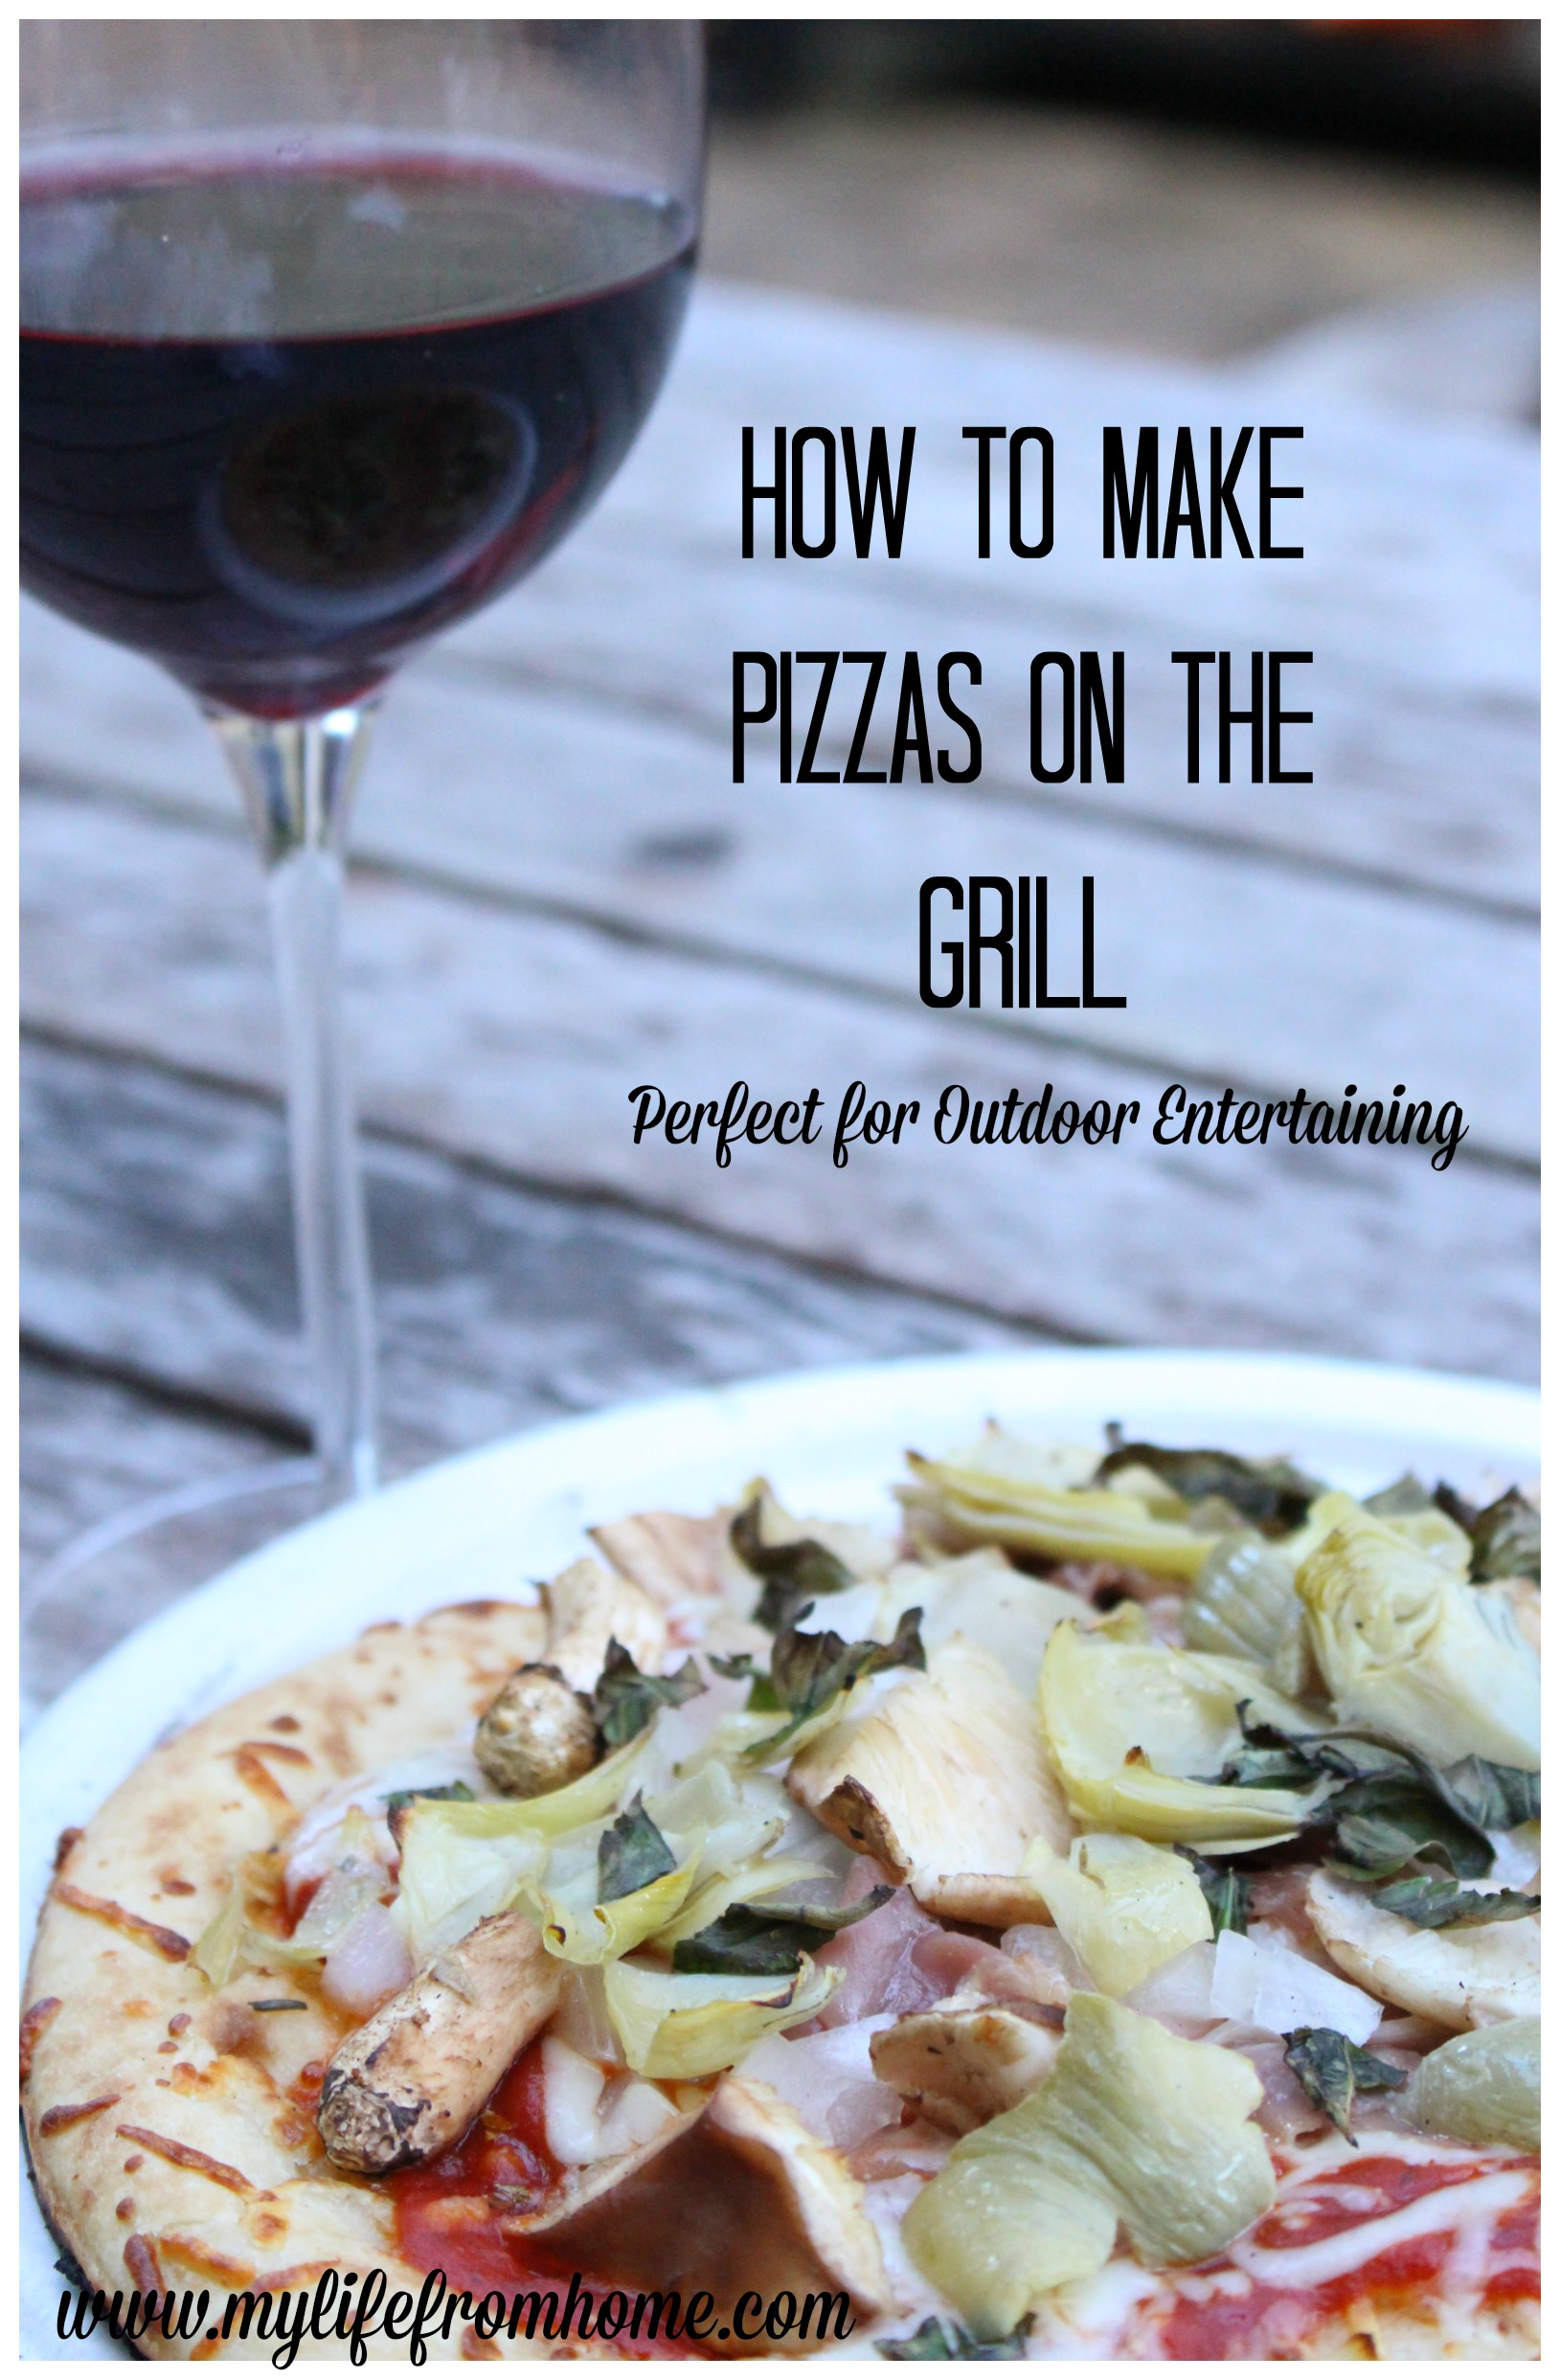 How to make pizzas on the grill by www.mylifefromhome.com